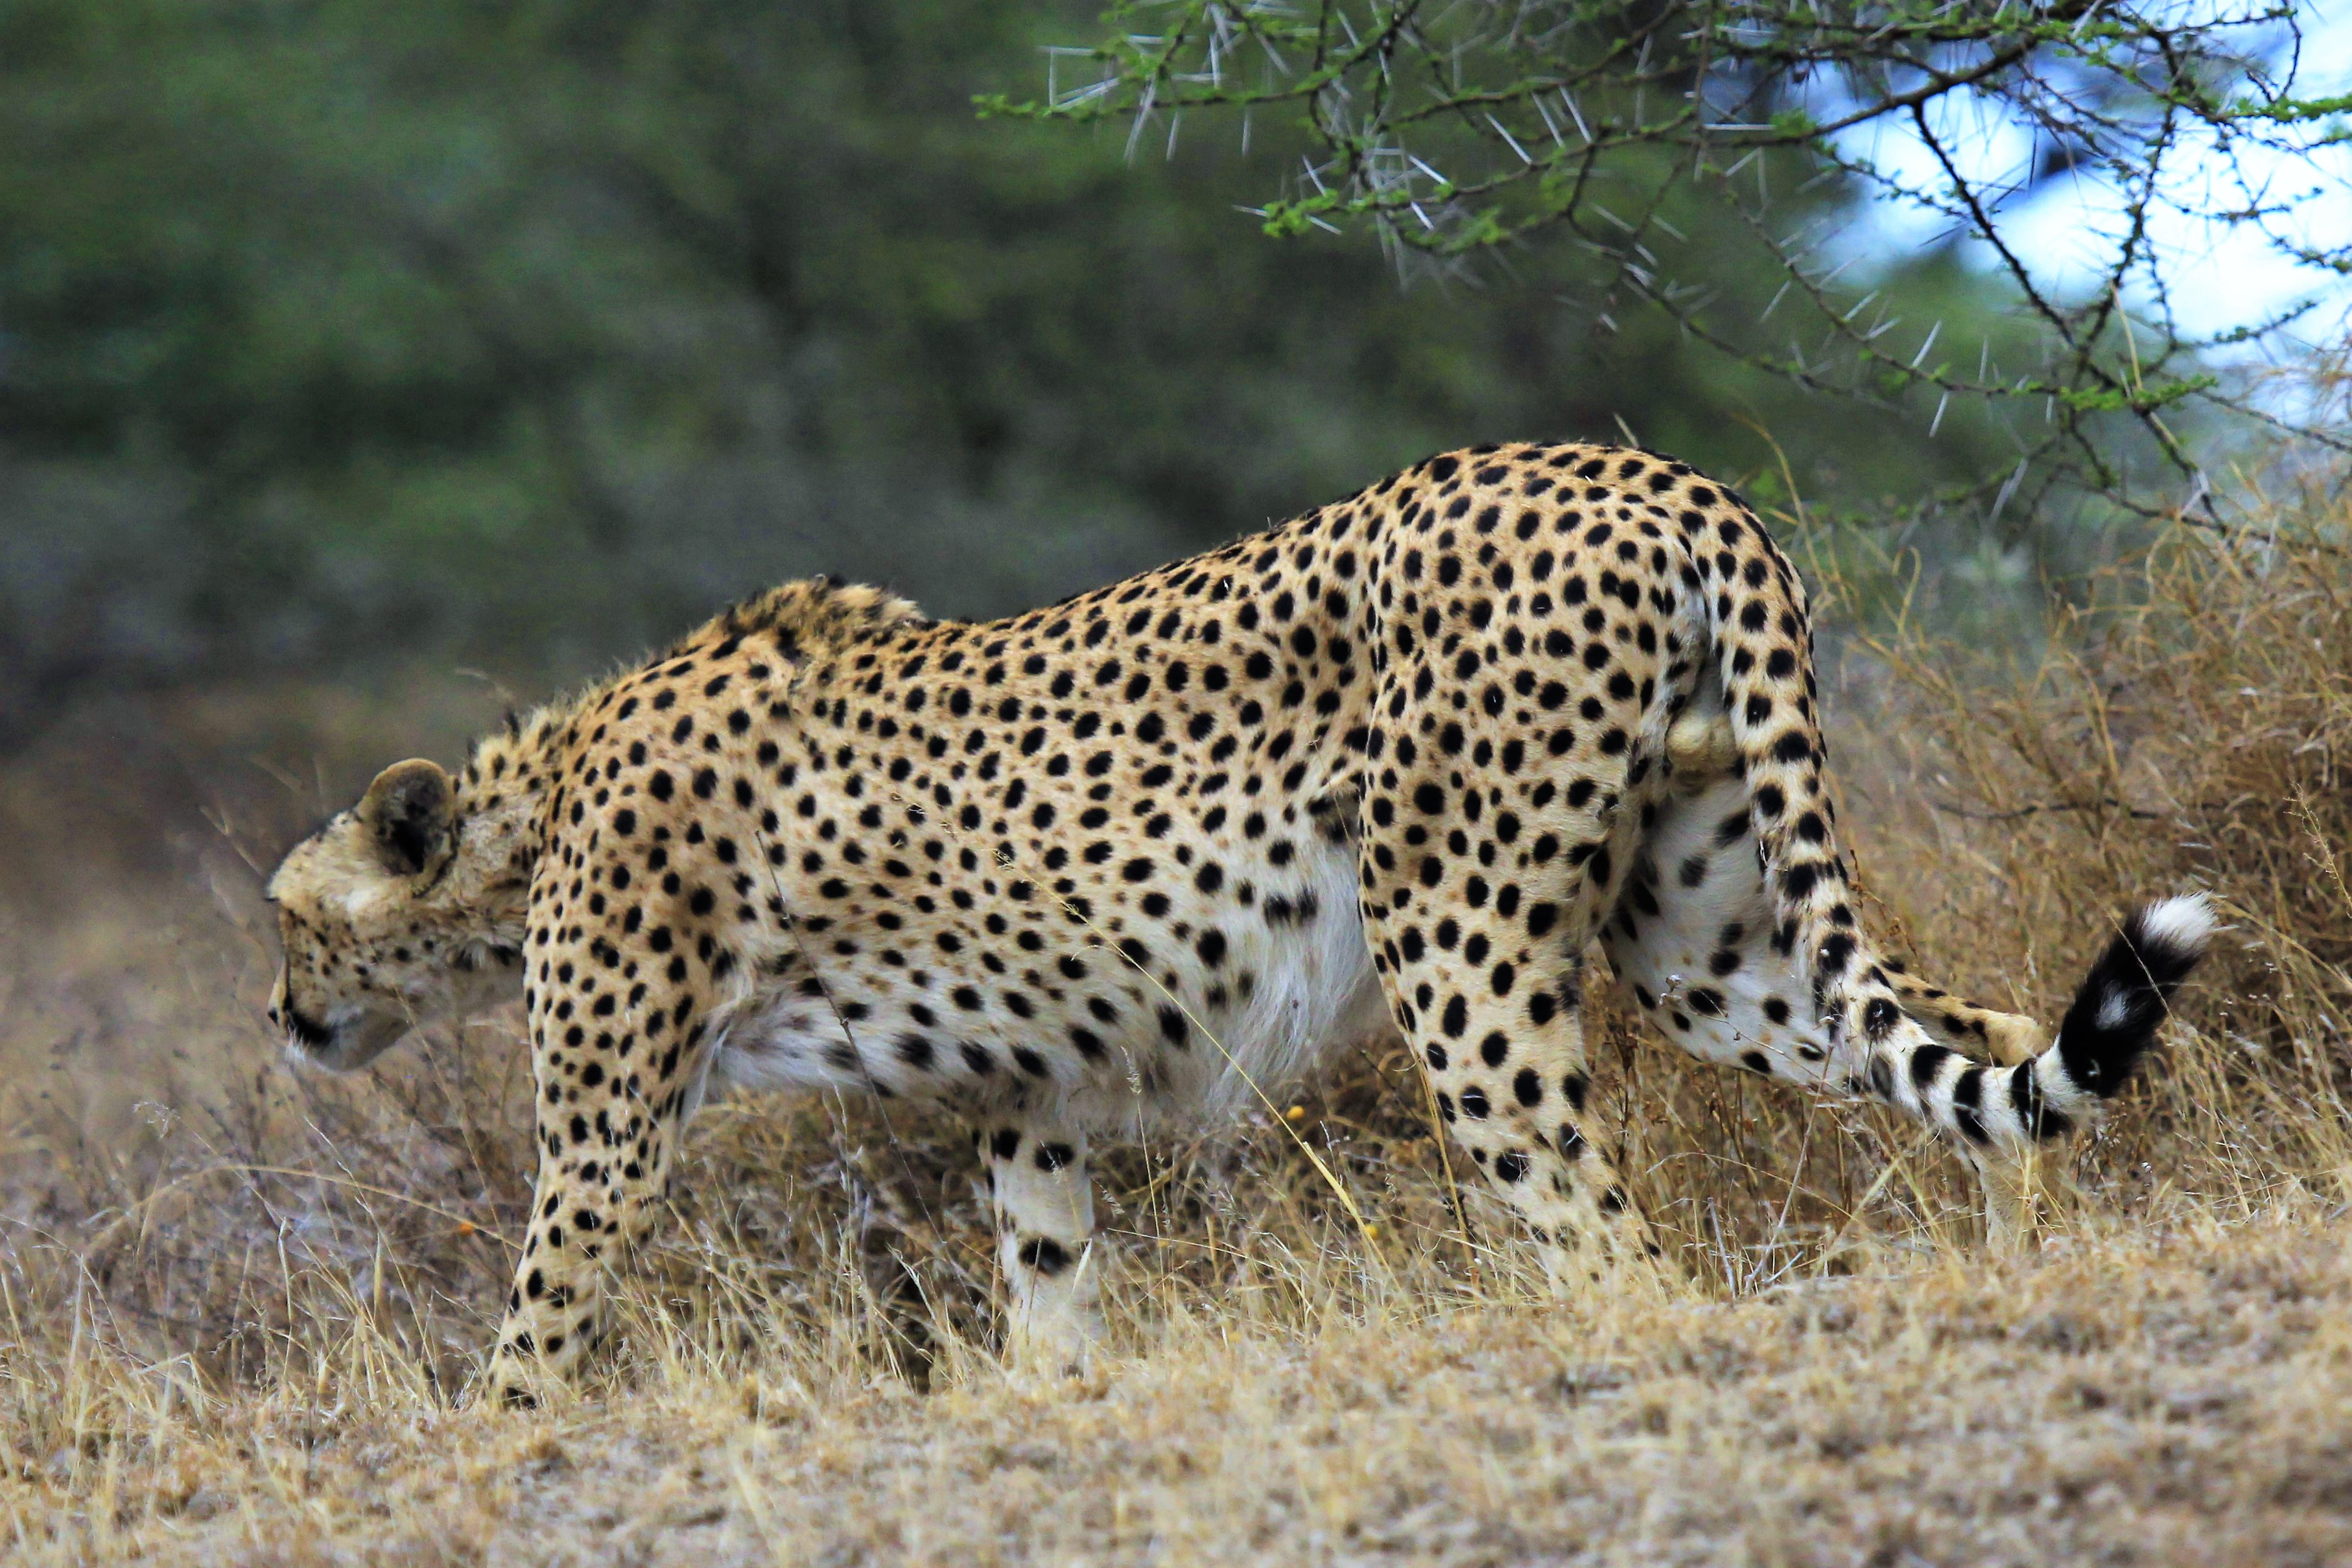 Cheetah on the prowl.